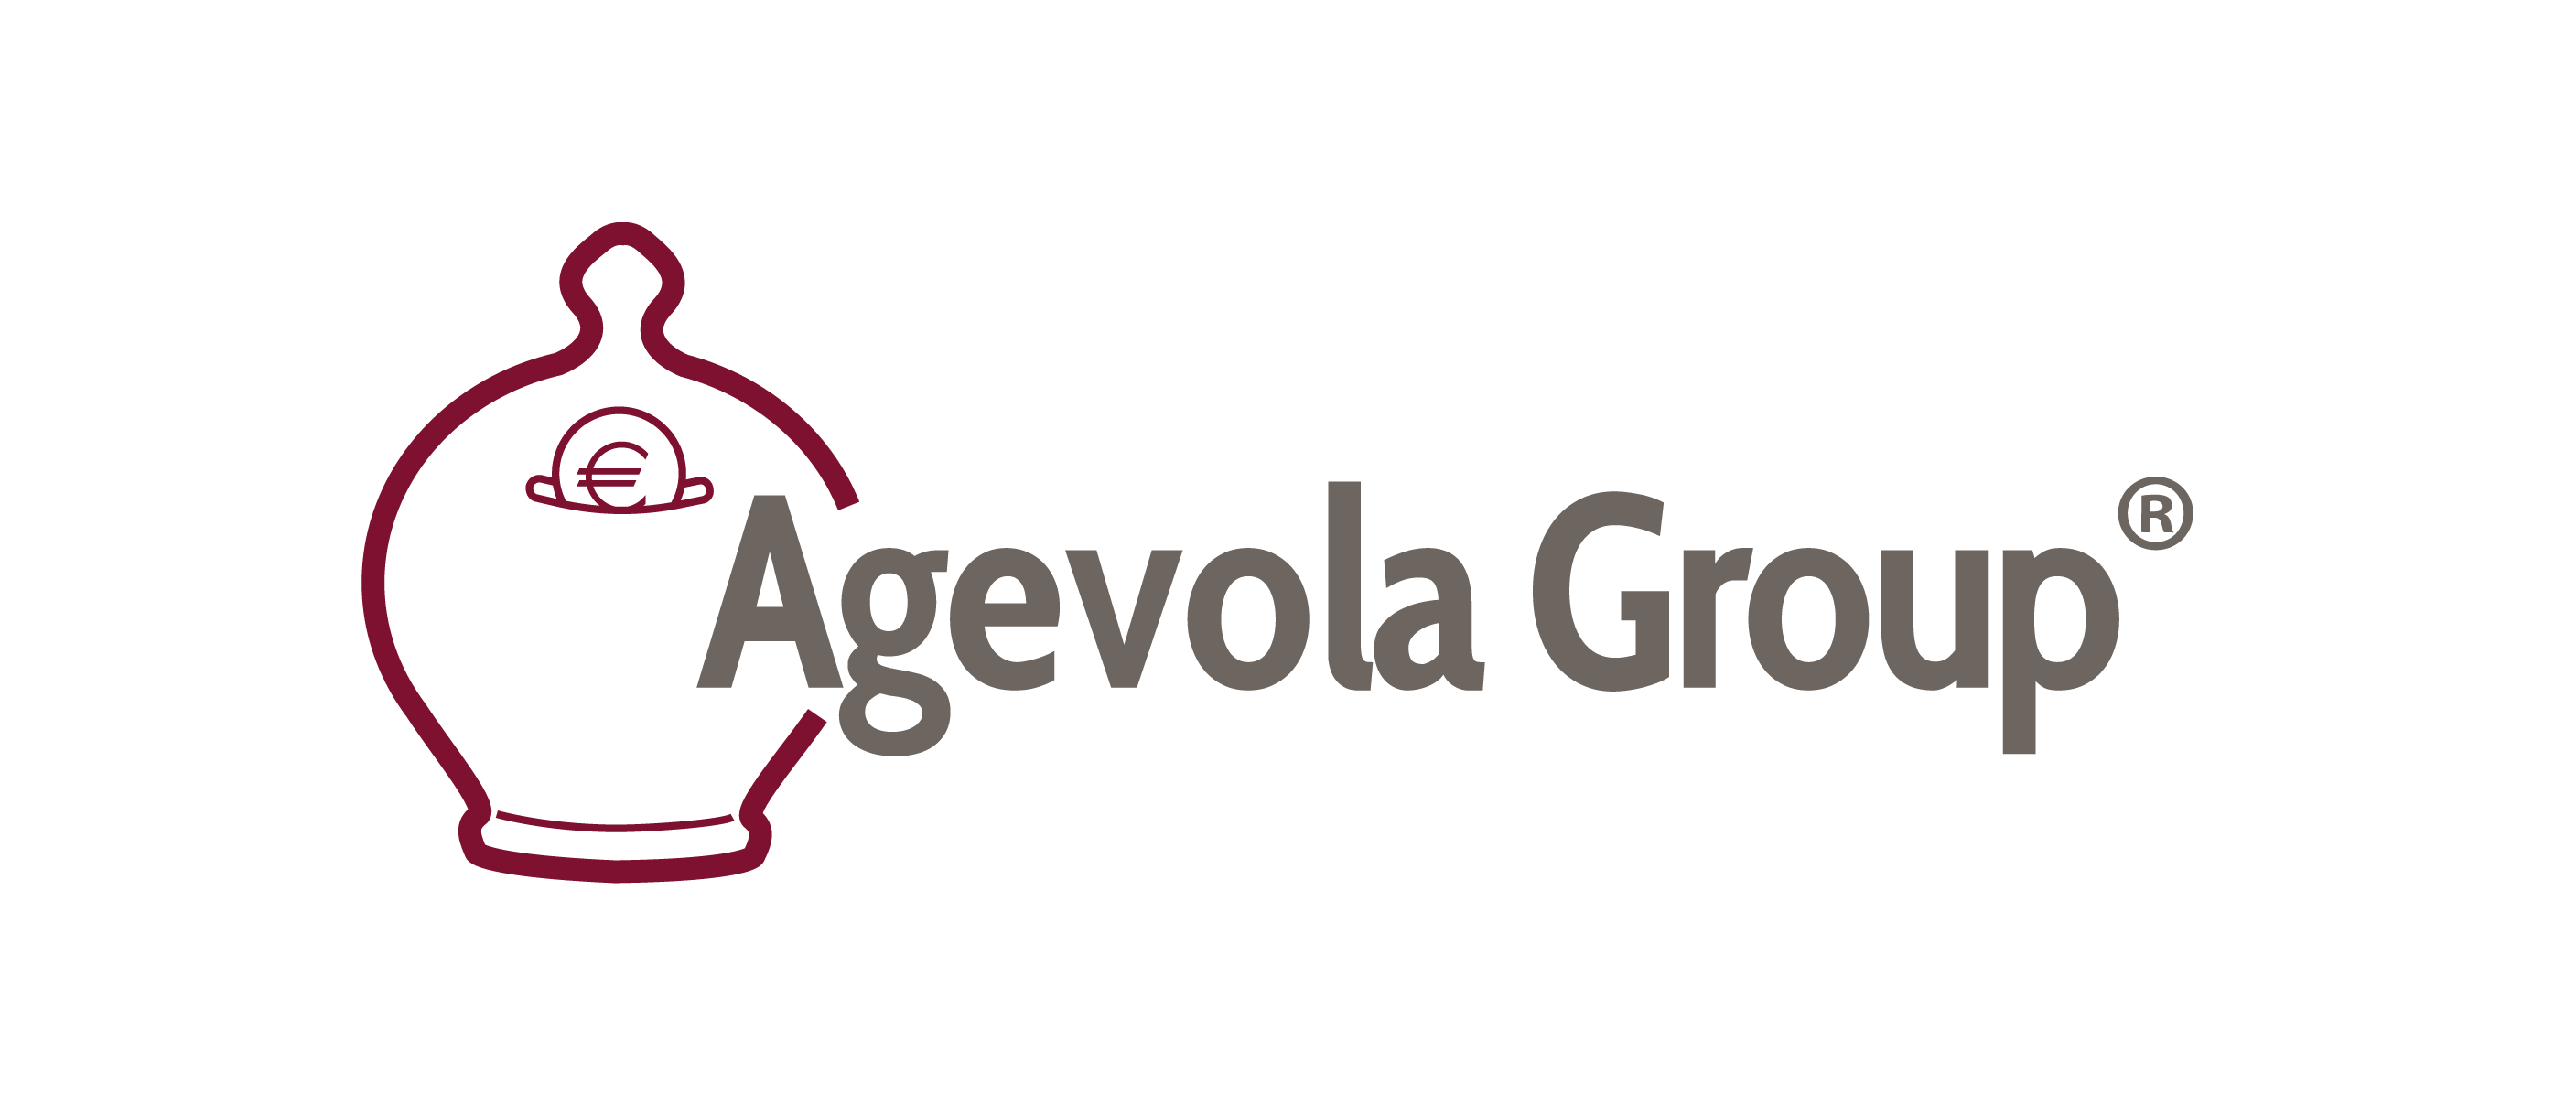 Agevola Group logo